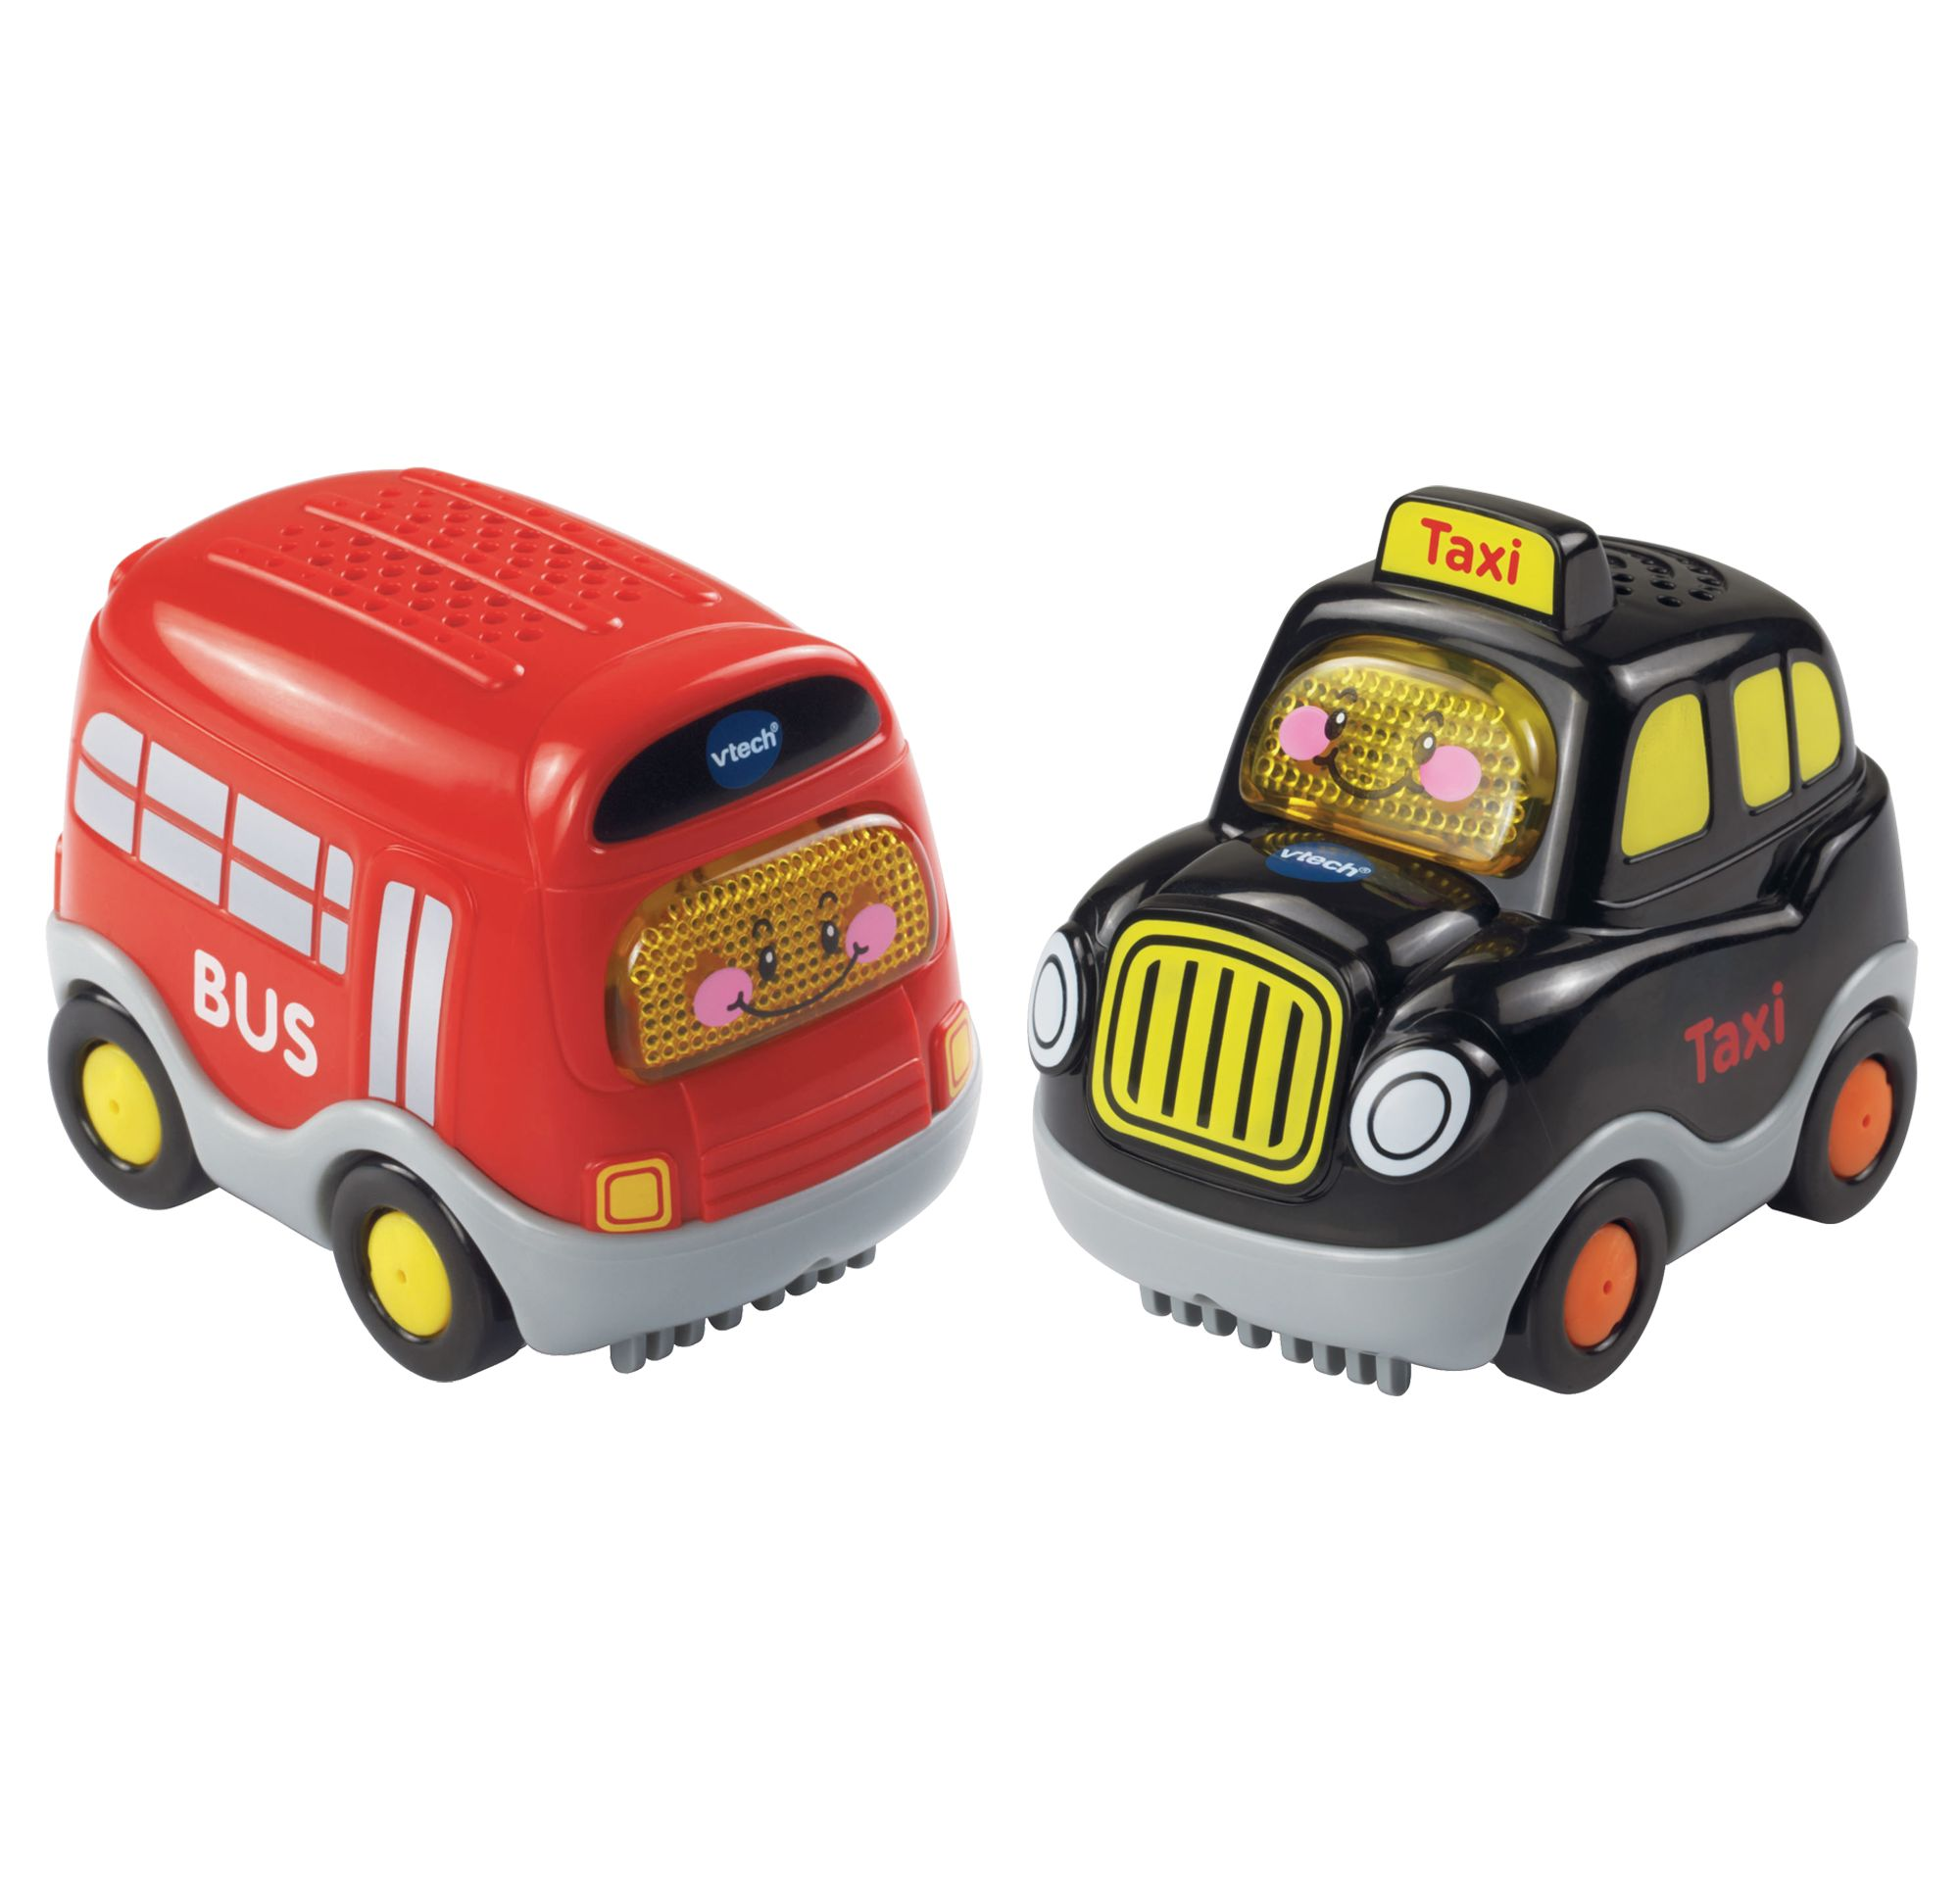 Vtech VTech Toot-Toot Drivers Bus & Taxi Duo Pack